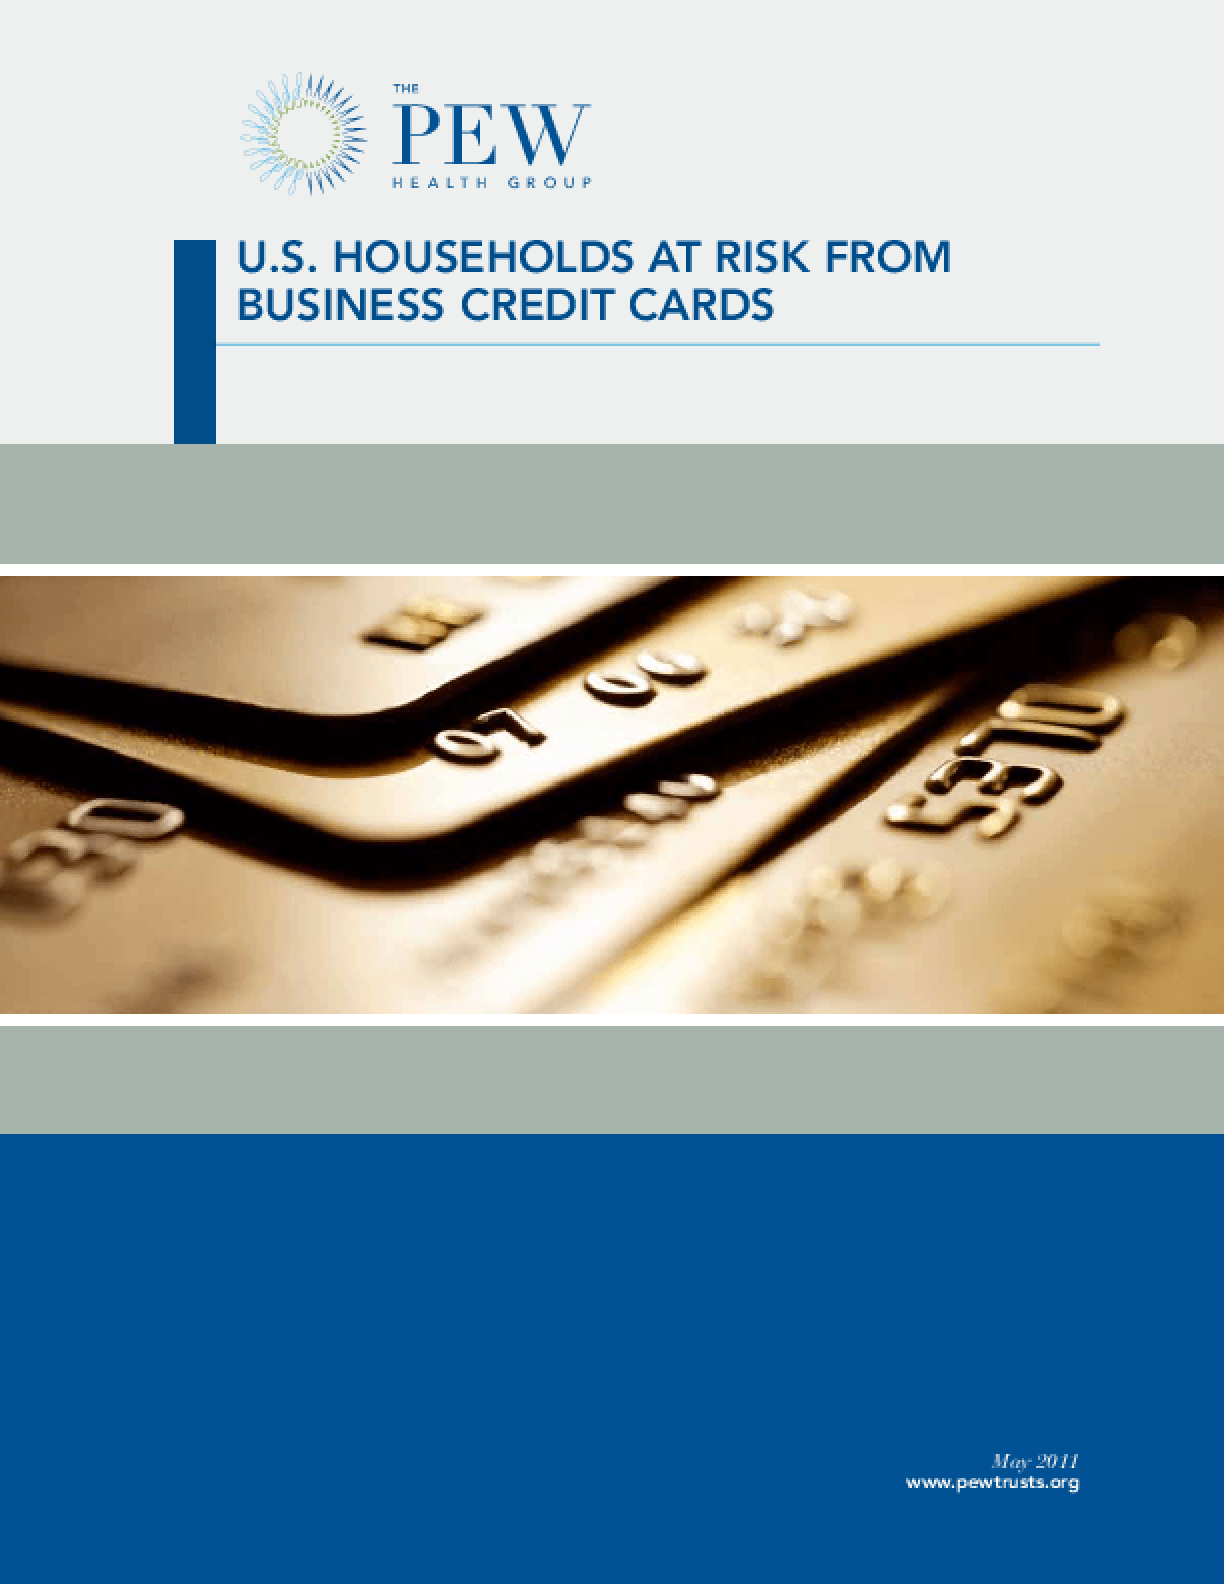 Business Credit Cards Place U.S. Households at Risk